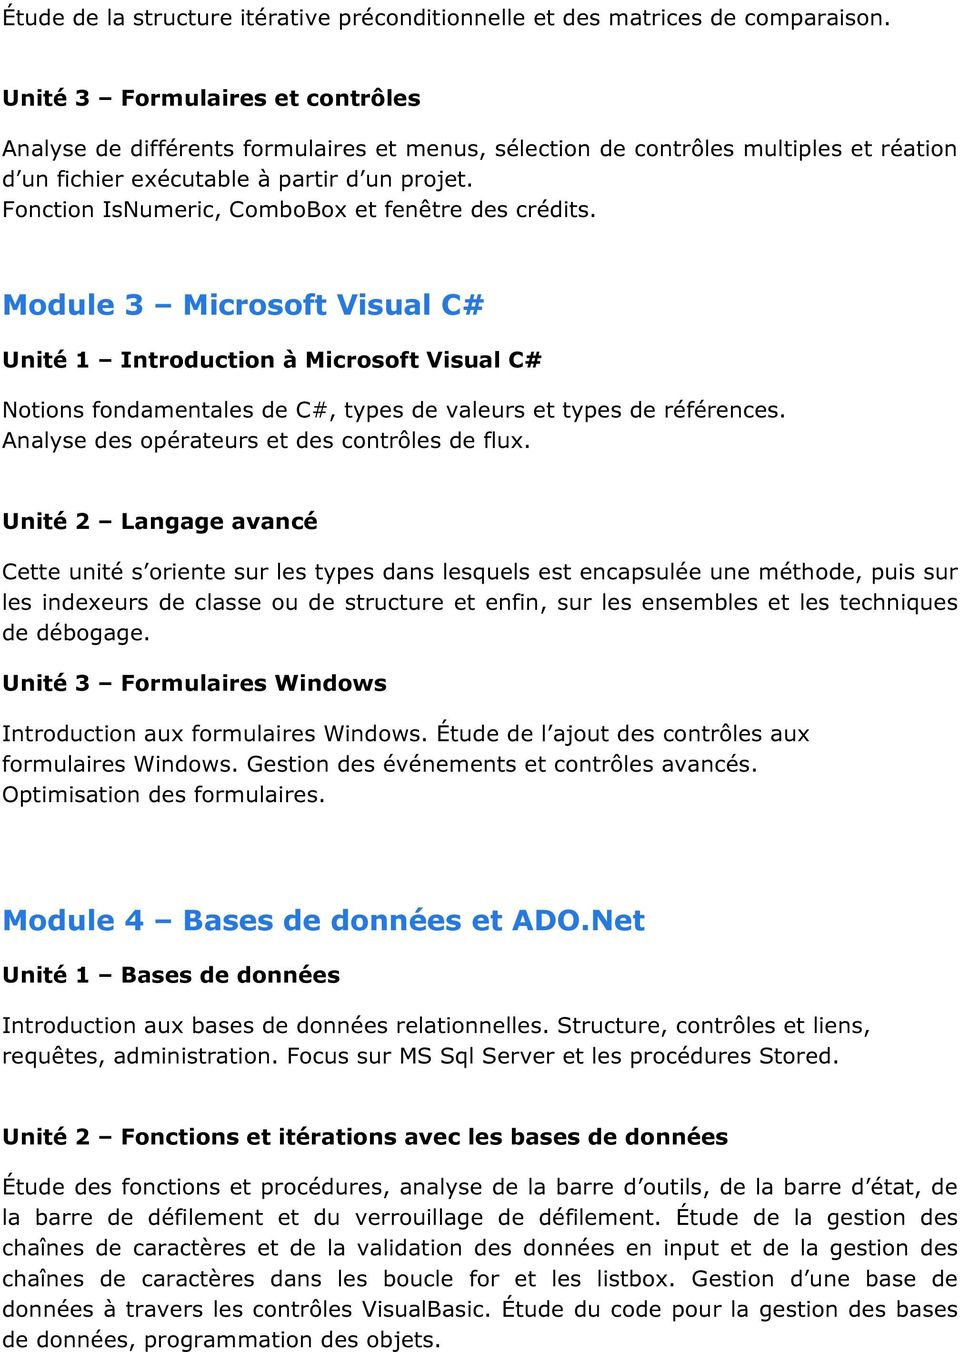 Fonction IsNumeric, ComboBox et fenêtre des crédits. Module 3 Microsoft Visual C# Unité 1 Introduction à Microsoft Visual C# Notions fondamentales de C#, types de valeurs et types de références.